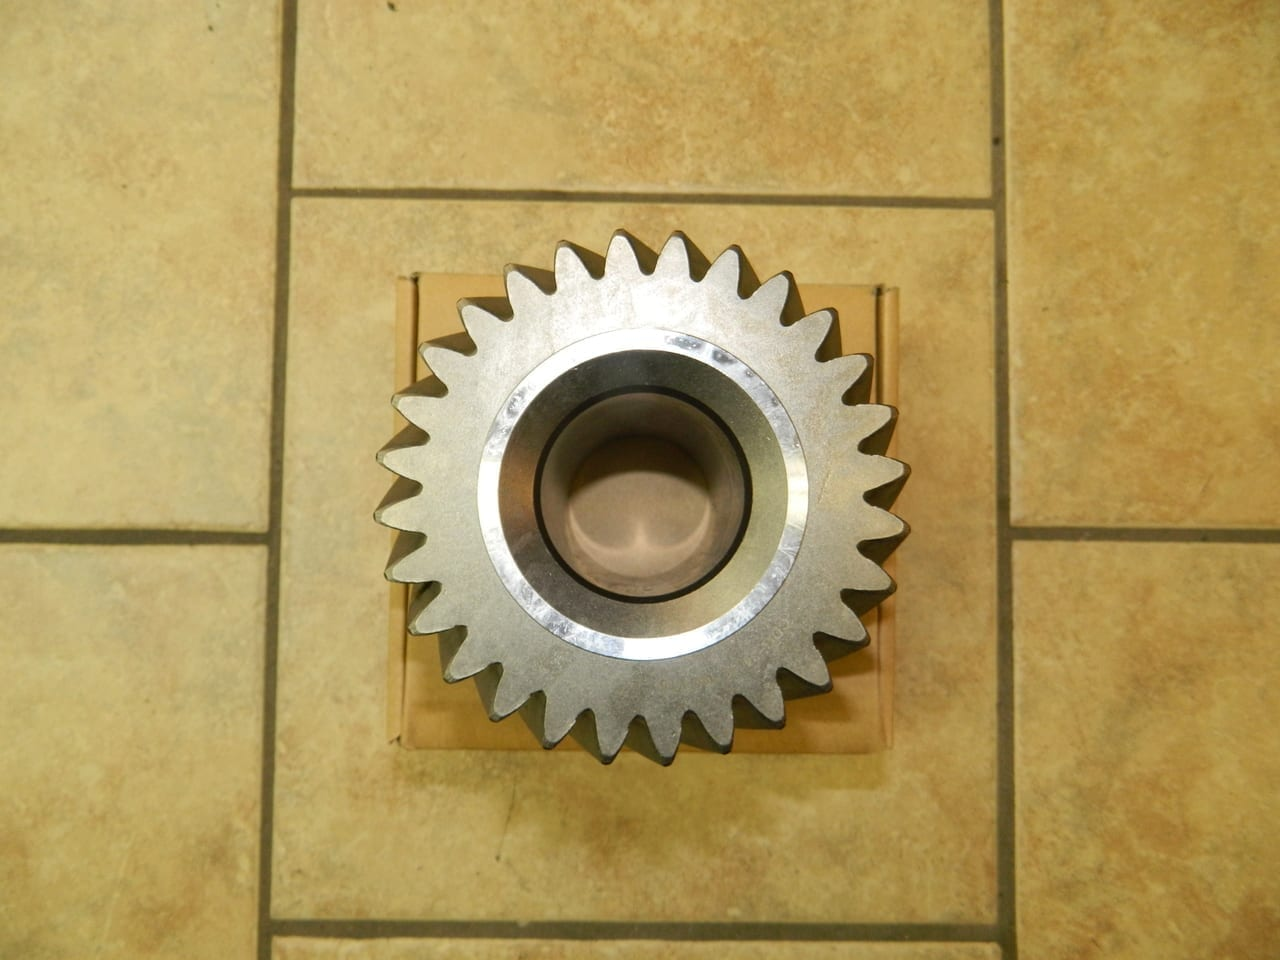 G56 Counter Shaft 3rd/4th Gear Cluster 28-36 Tooth 2005+ Dodge Ram Cummins 6 Speed Transmission